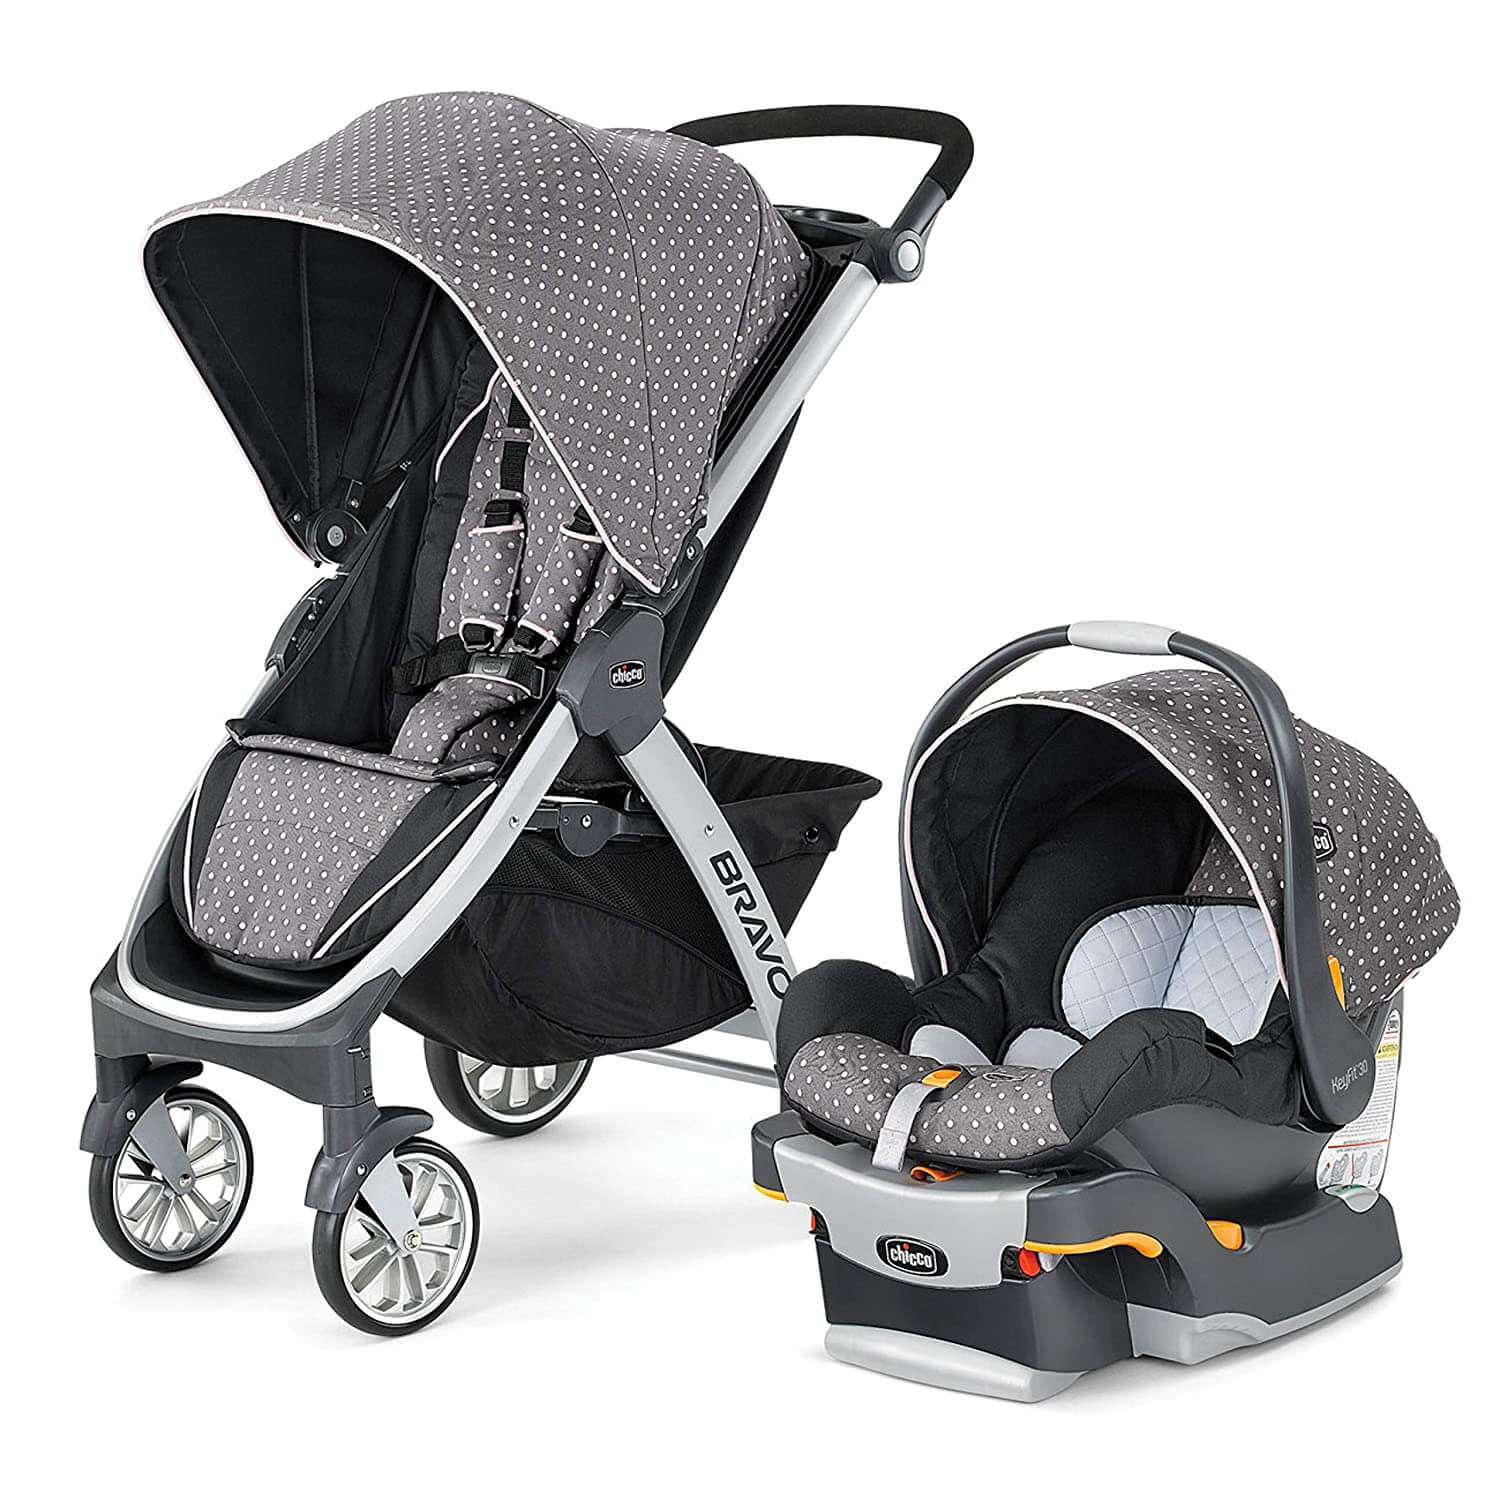 Chicco Bravo Trio Travel System best baby stroller